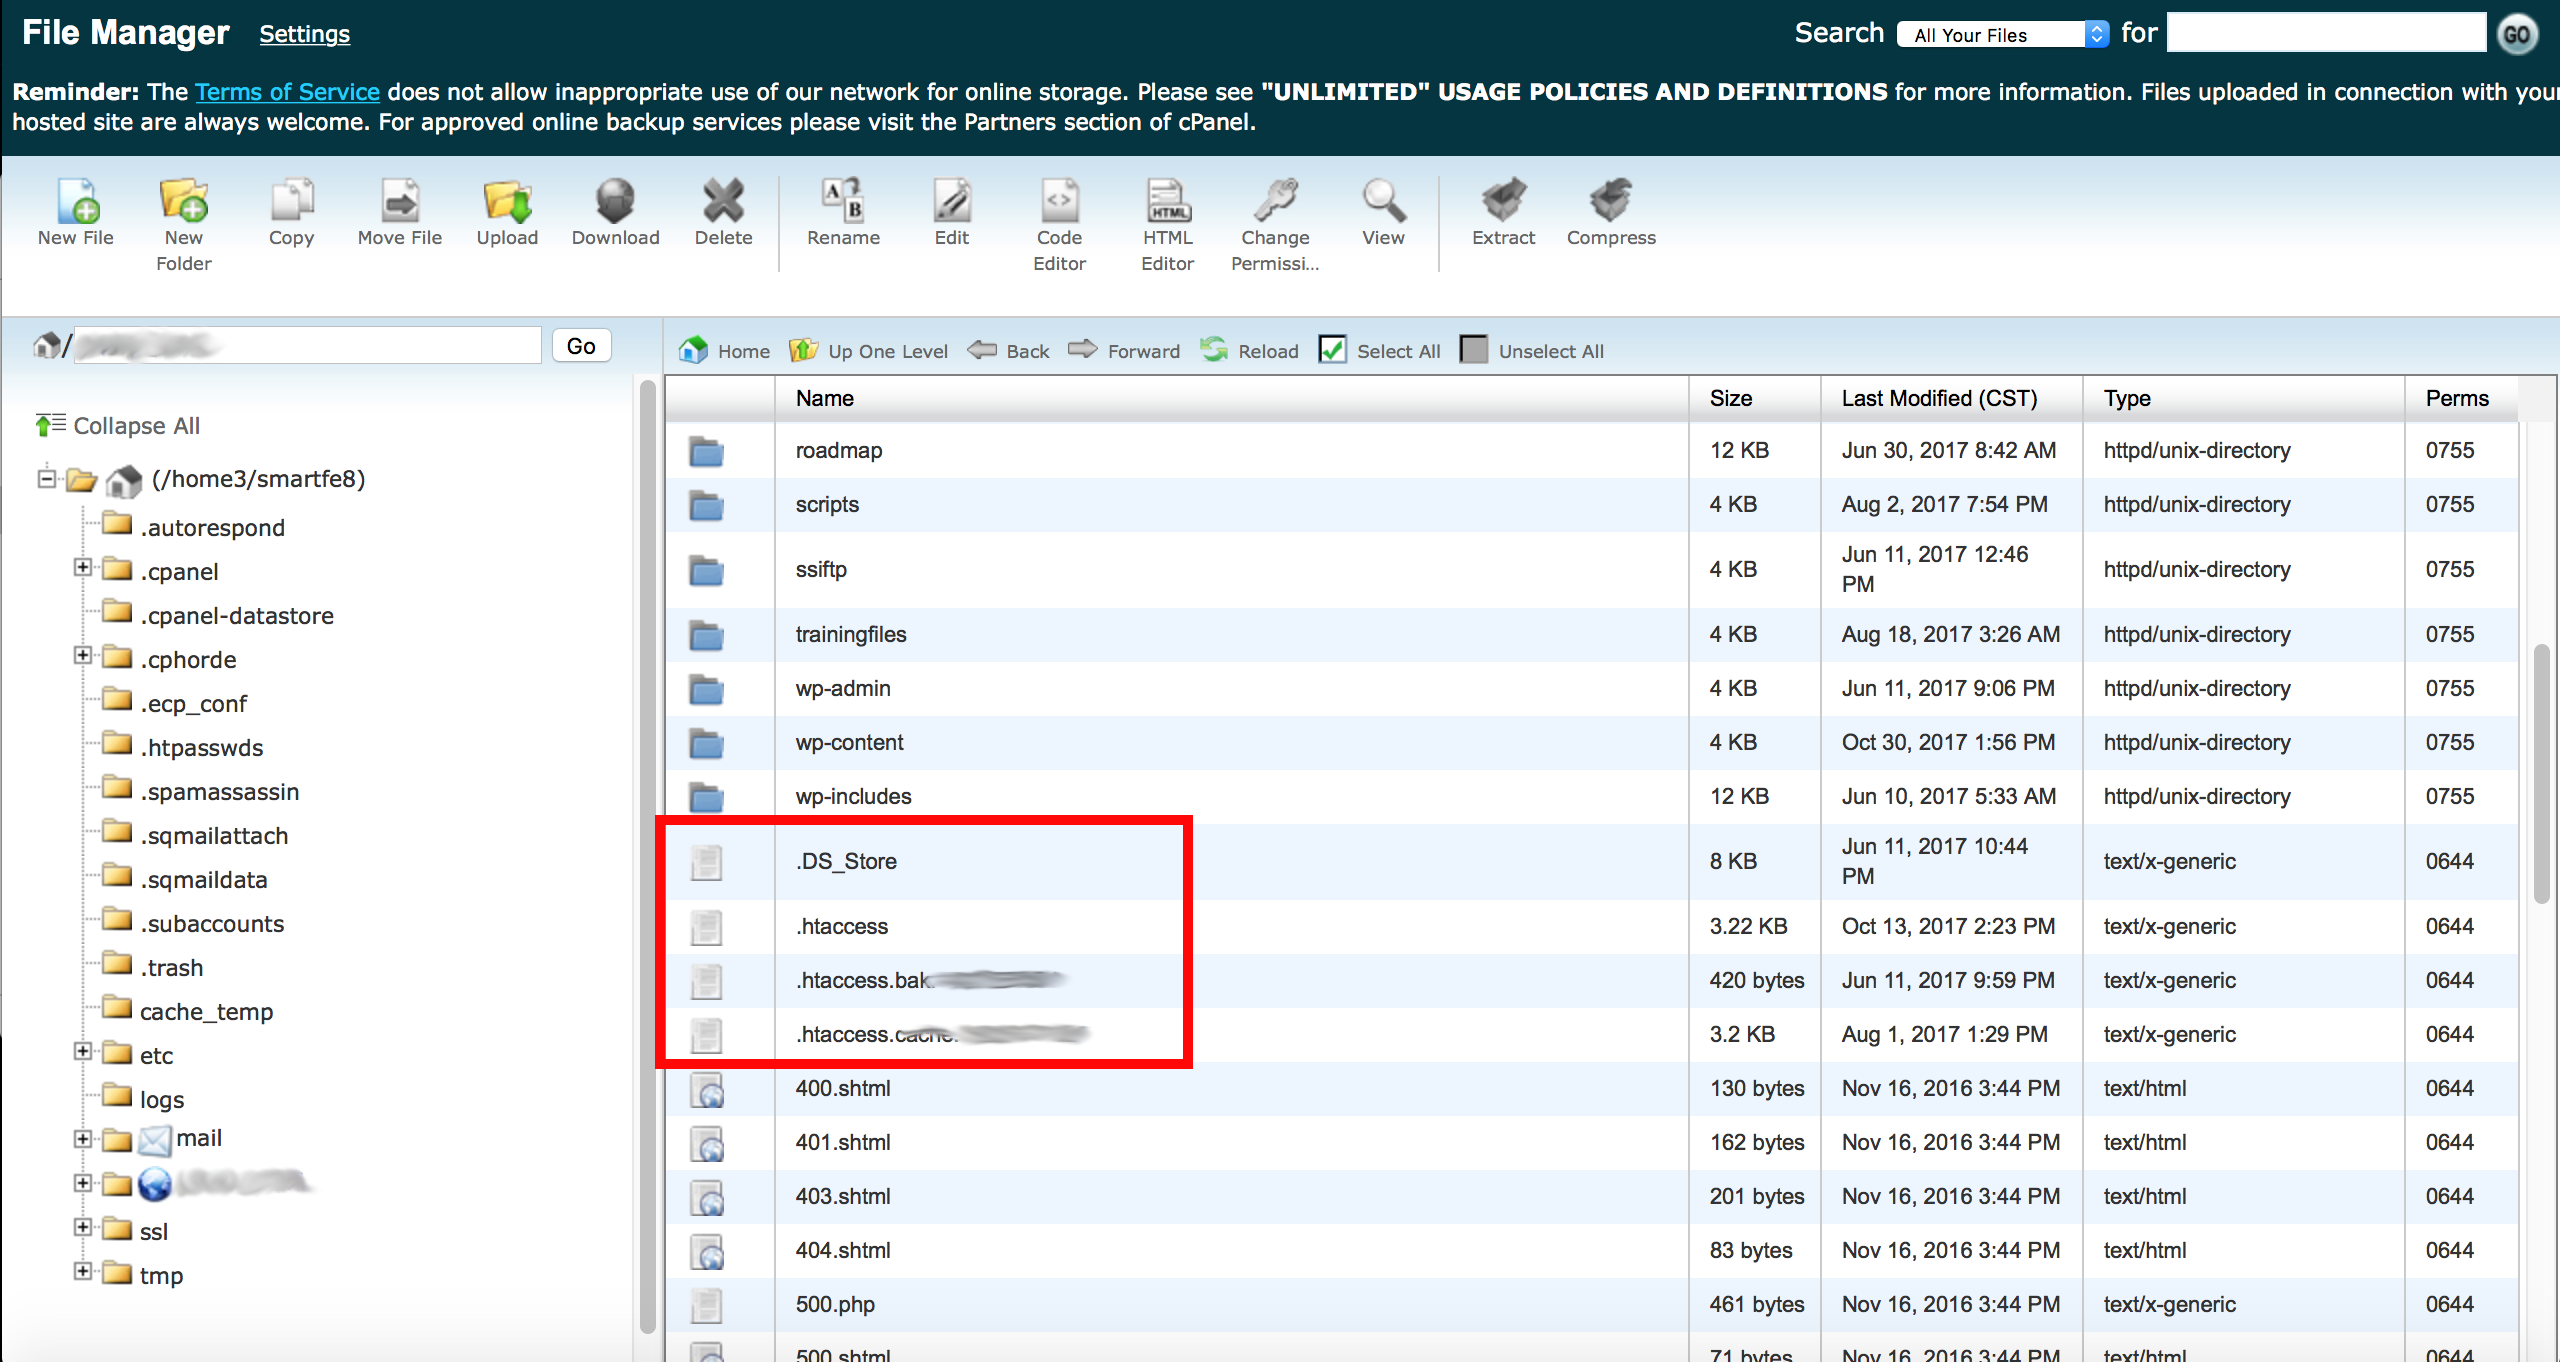 How to Fix Bluehost's cPanel File Manager not Showing Hidden